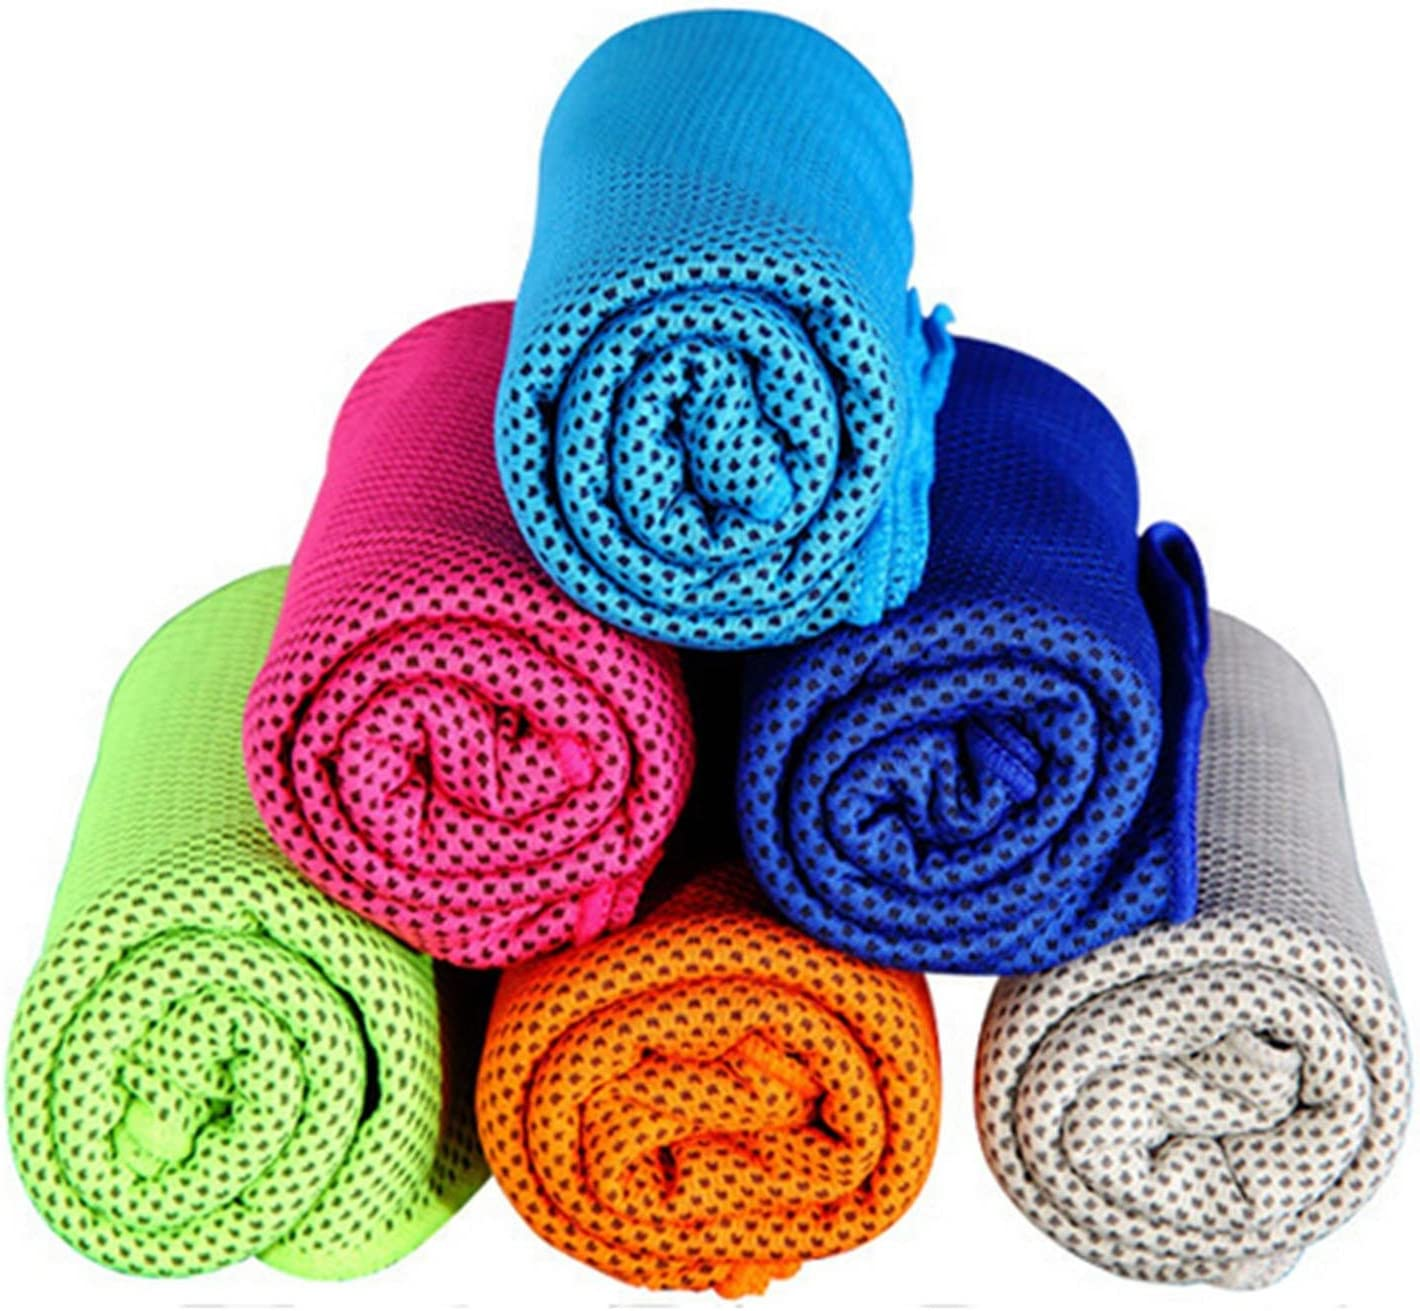 "MJ Fashion Cooling Towel for Instant Relief - 40"" 12"" - for Sports, Workout, Fitness, Gym, Yoga, Pilates, Travel, Camping & More (Green)"